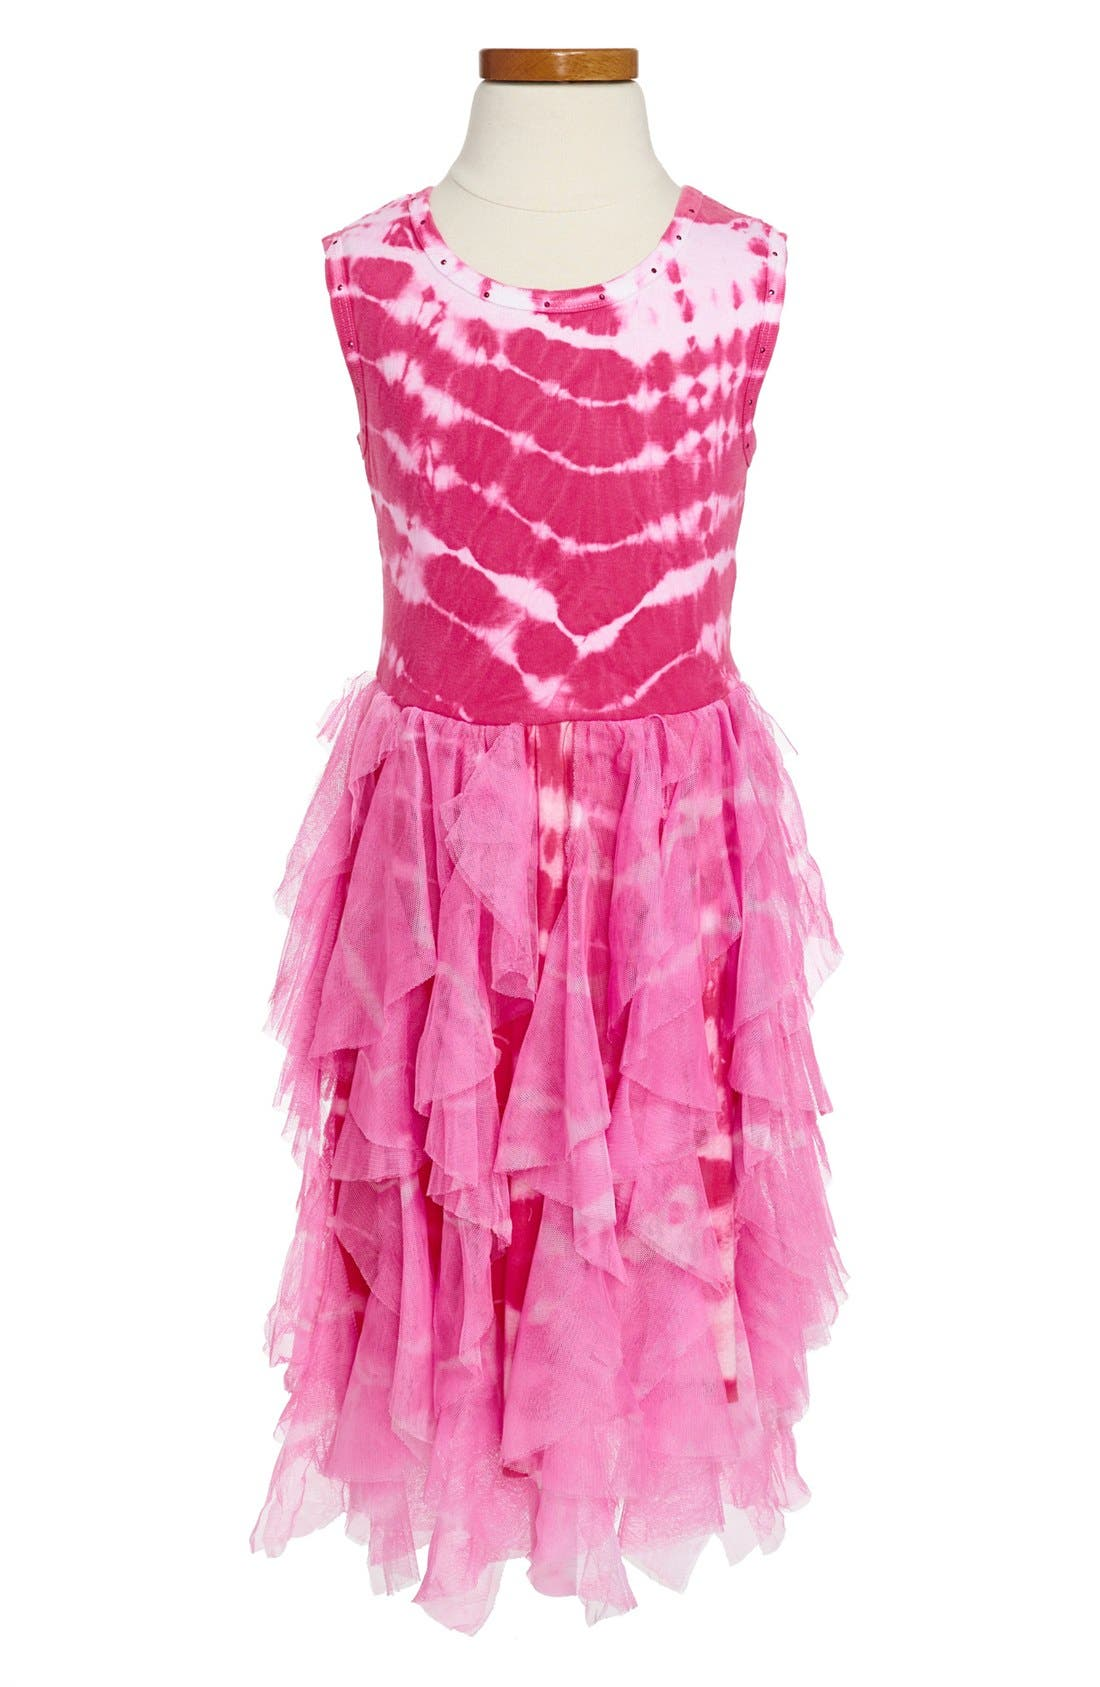 Main Image - Mignone Tie Dye Dress (Little Girls & Big Girls)